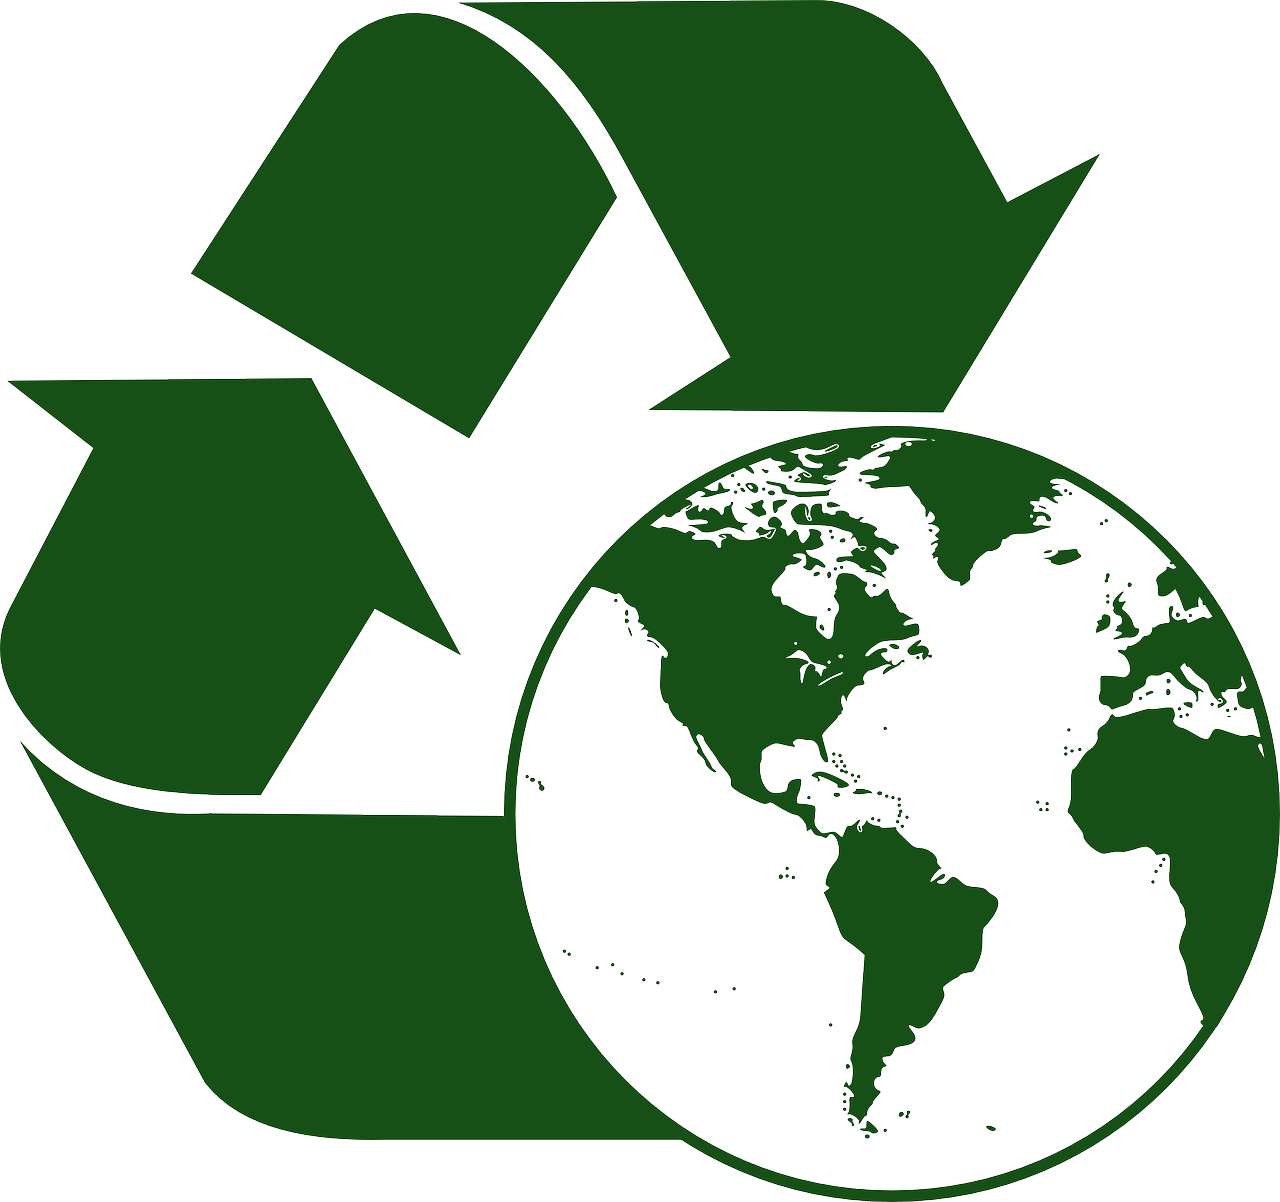 recycling-160925_1280png